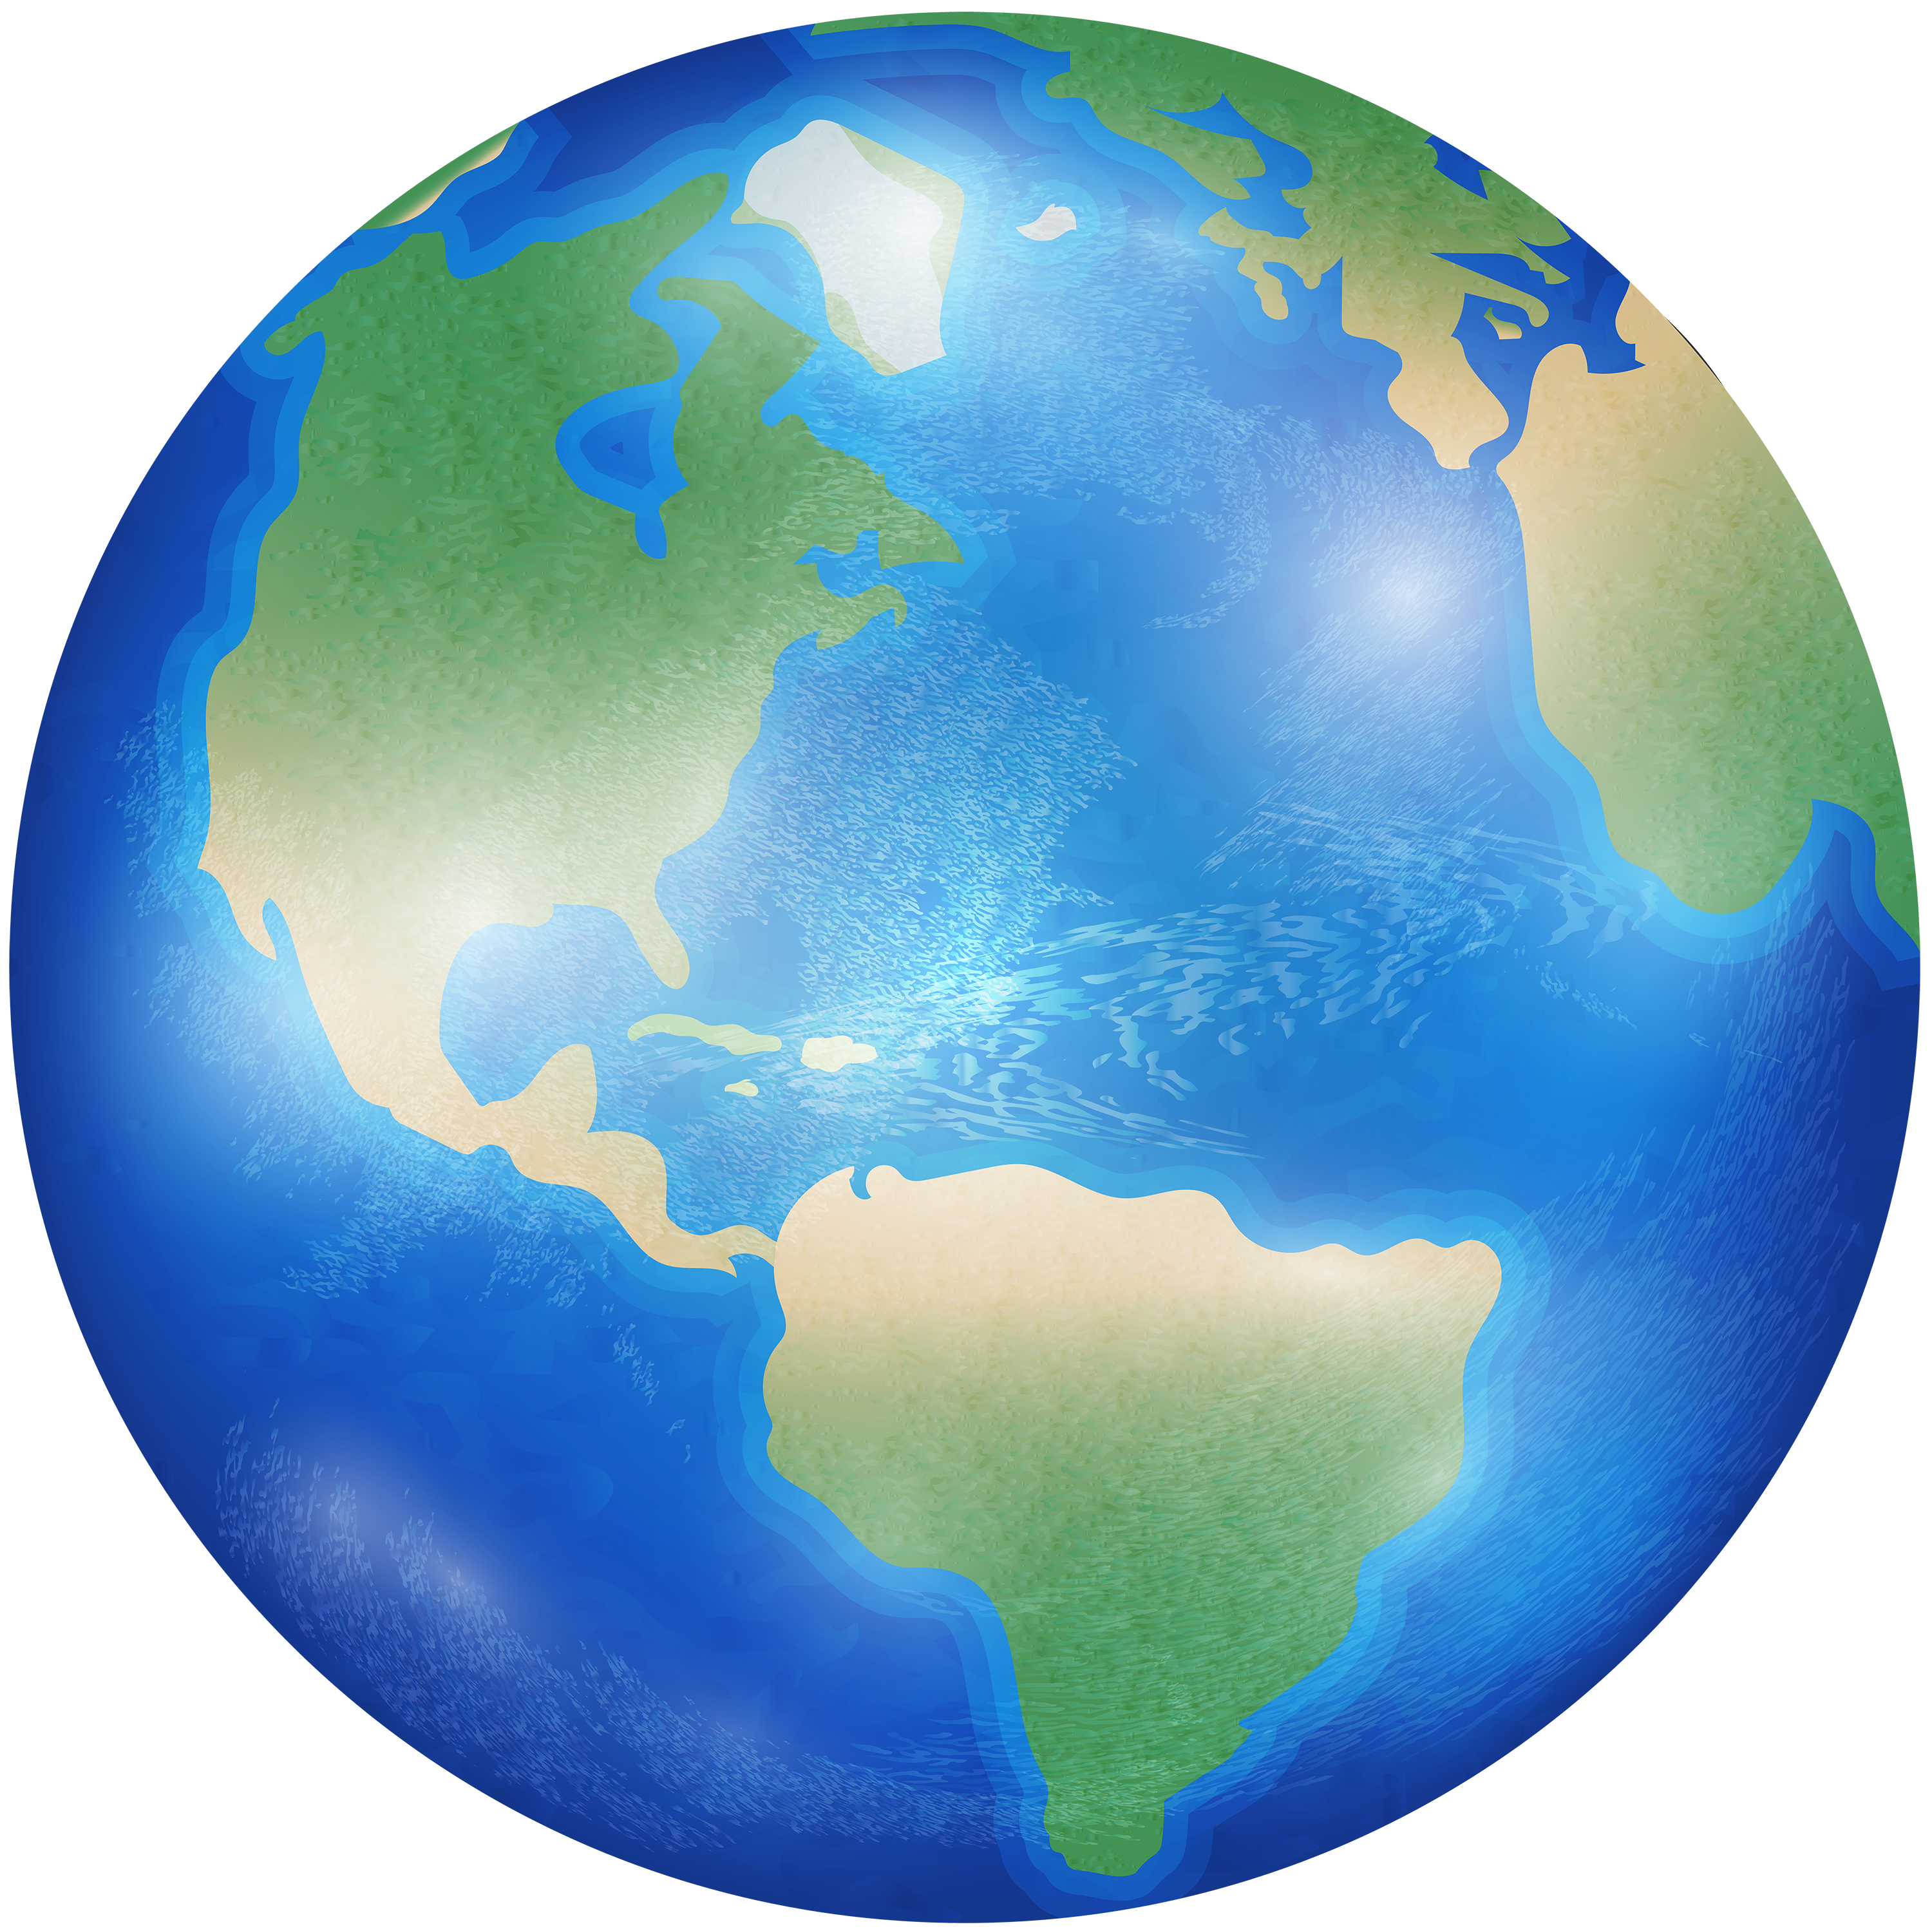 Earth png image. Clip art best web